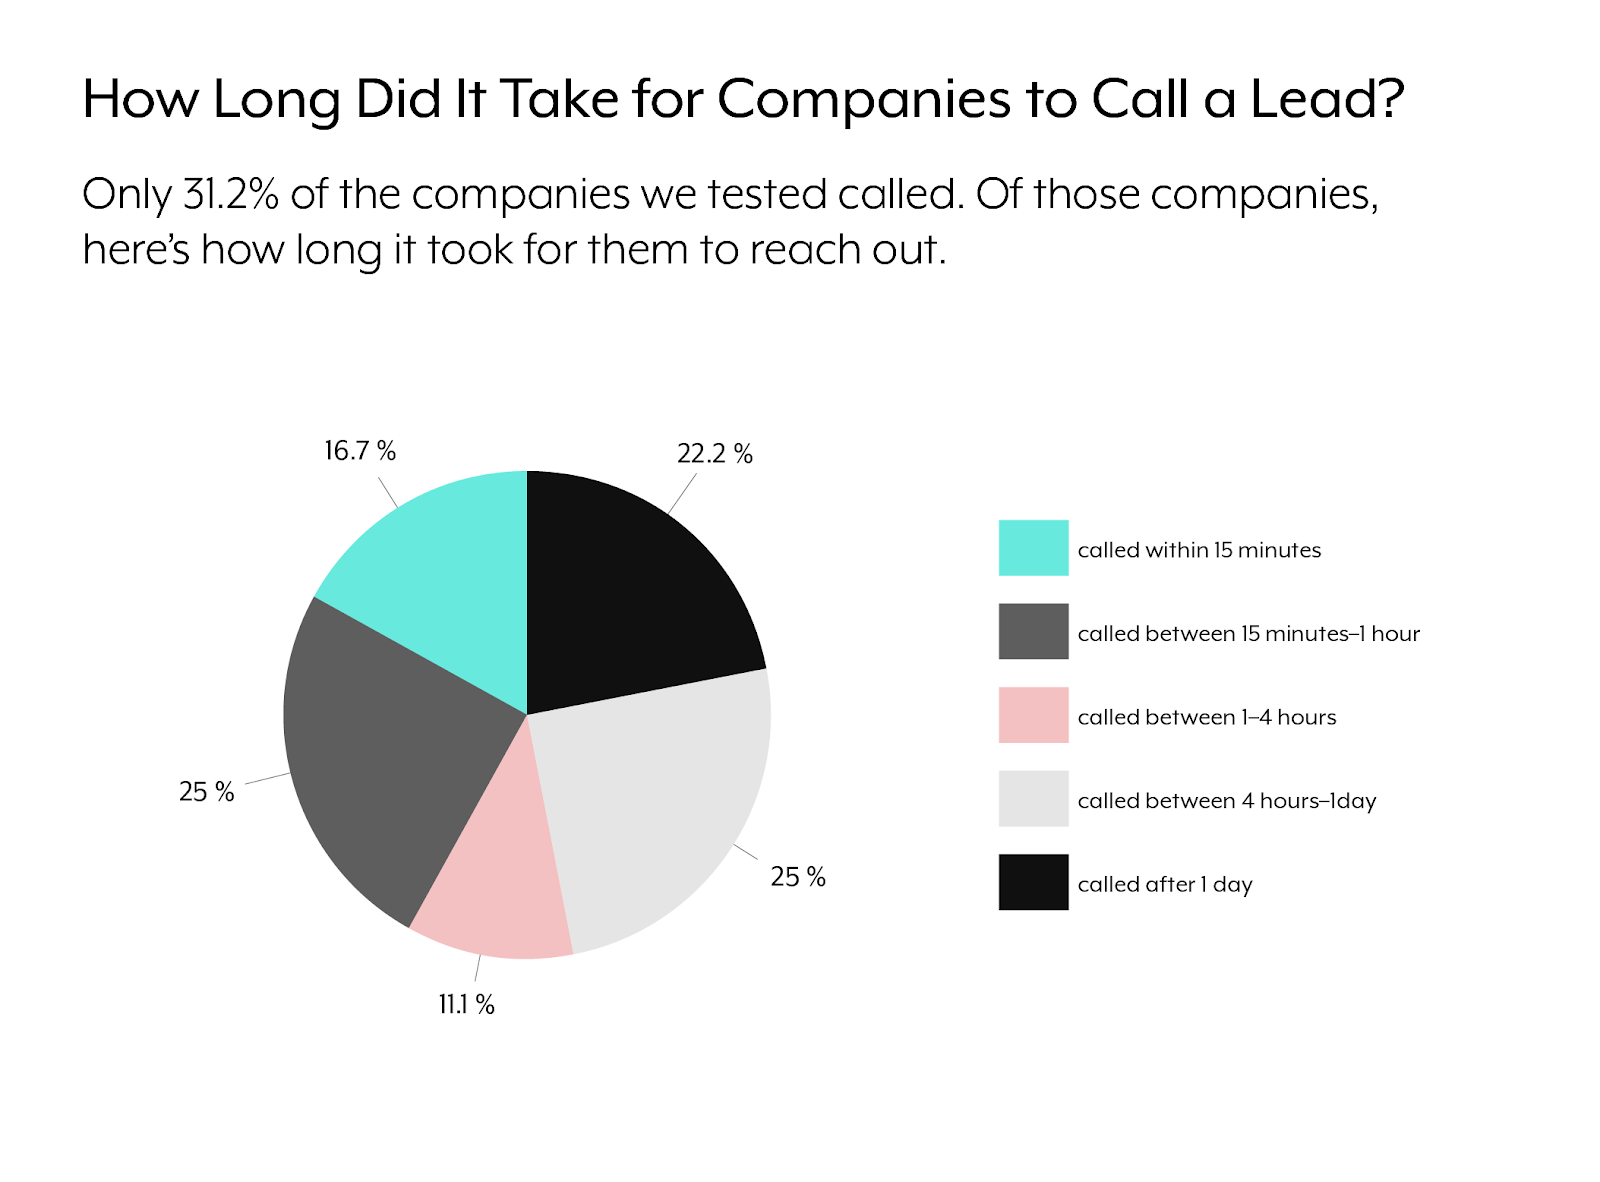 A pie chart that breaks down how quickly organizations call inbound leads.